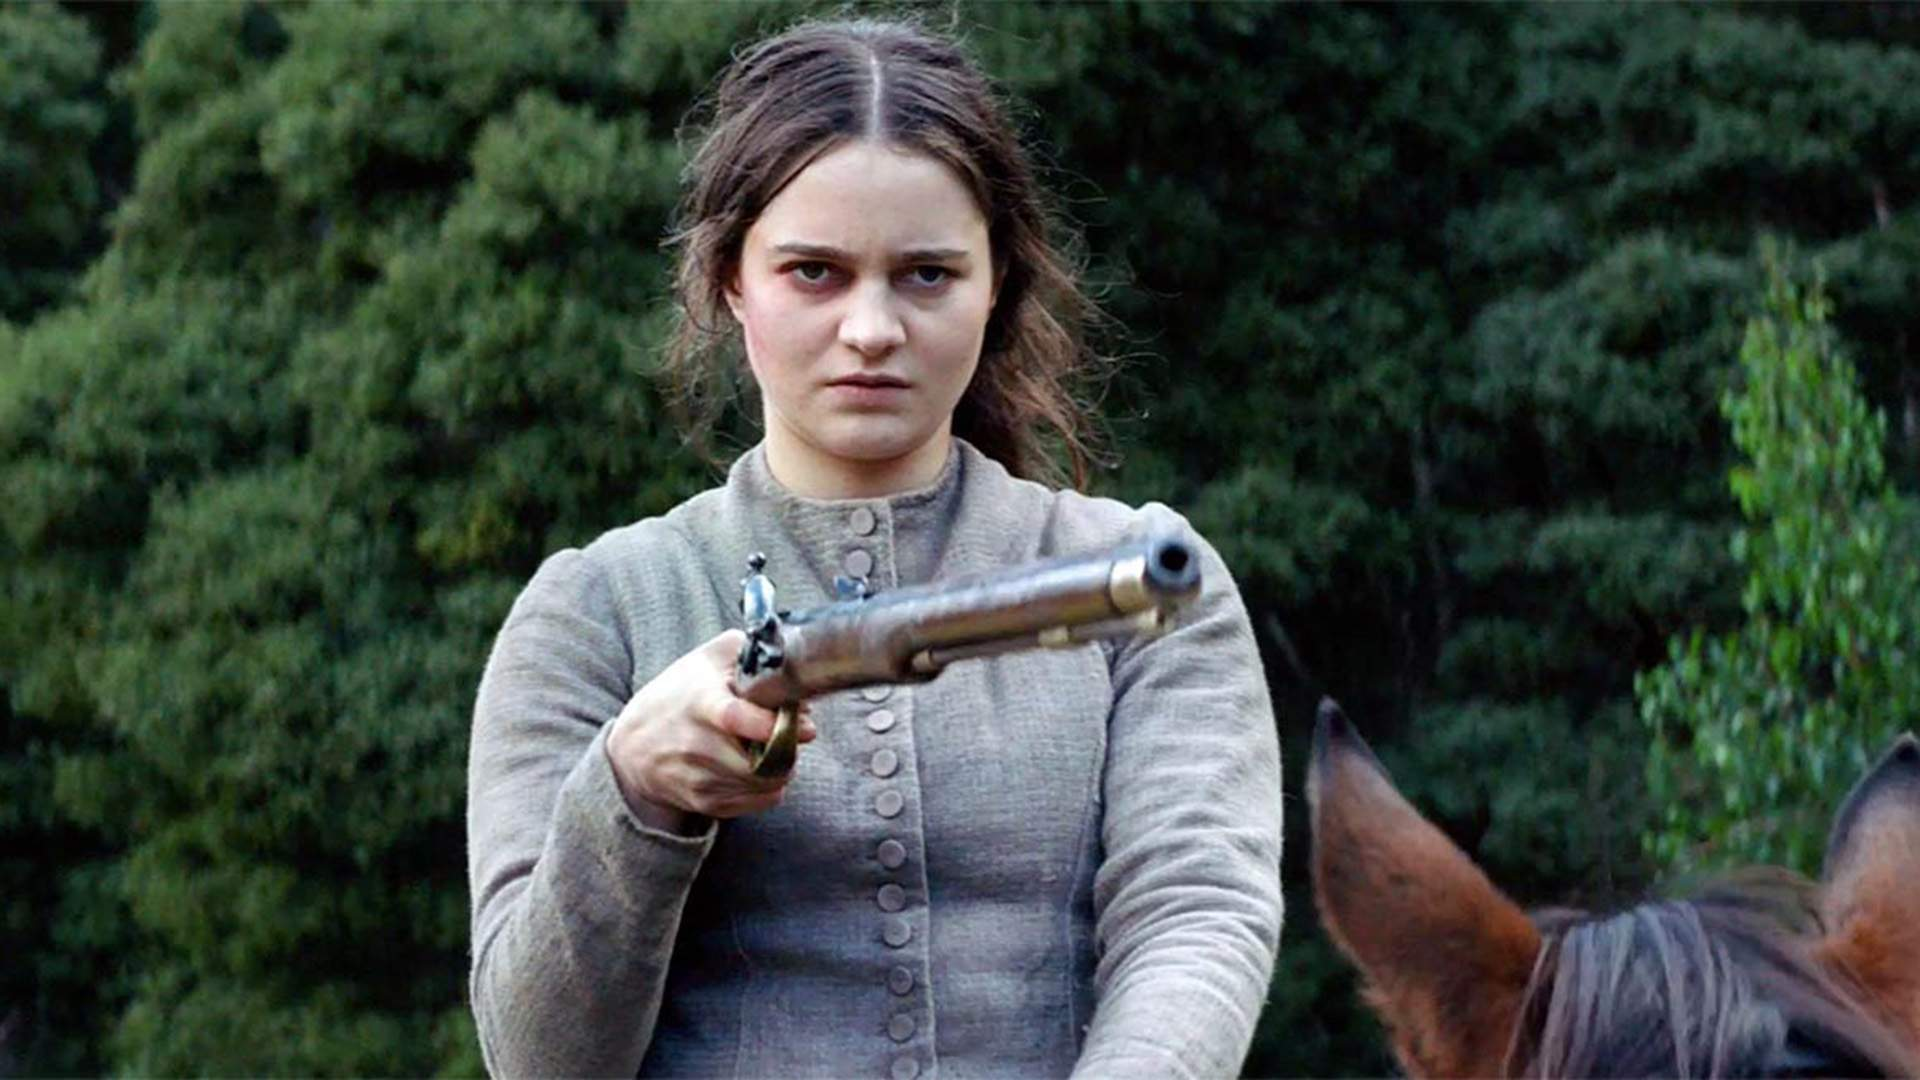 'The Babadook' Director Jennifer Kent Returns with Her Brutal New Film, 'The Nightingale'